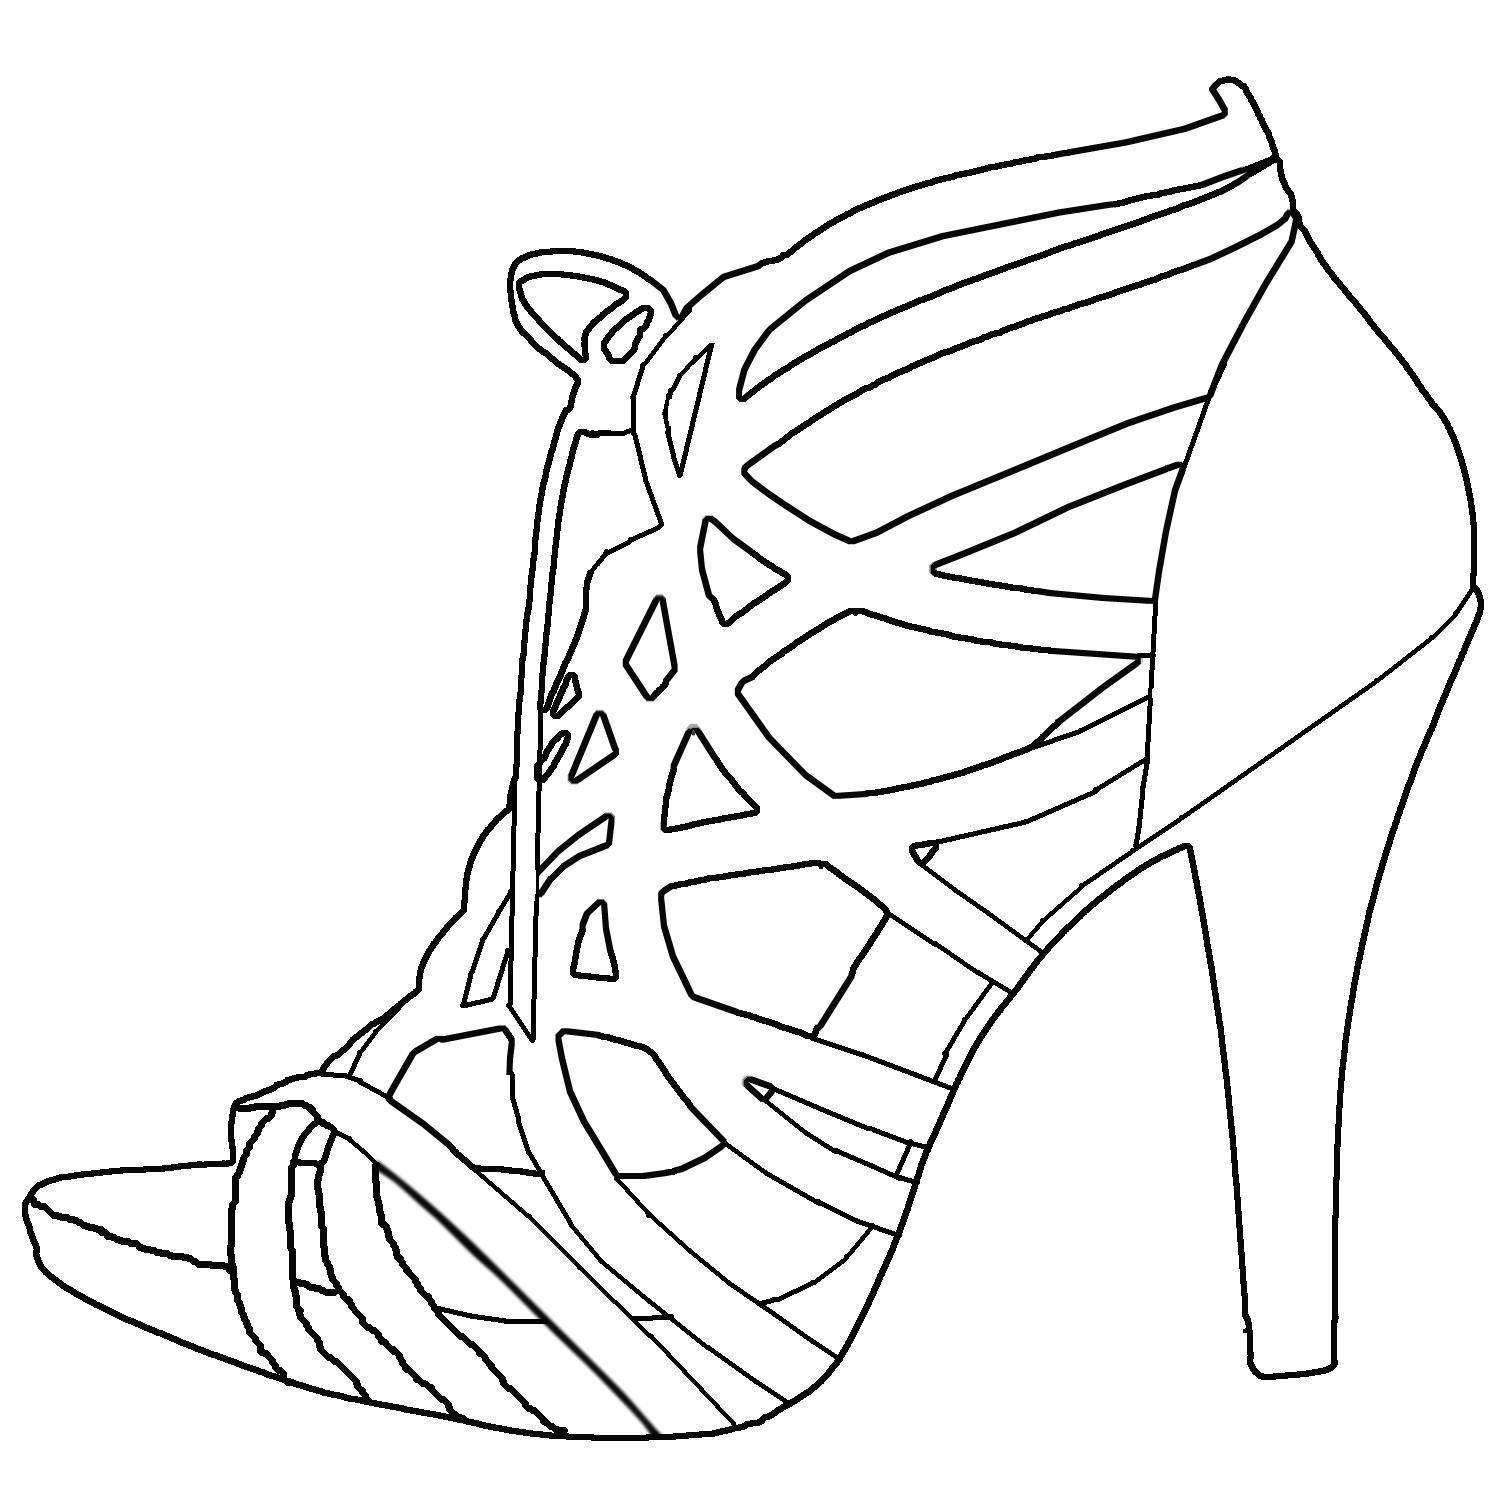 drawing of shoes image shoes drawing pencil sketch colorful realistic art of image shoes drawing